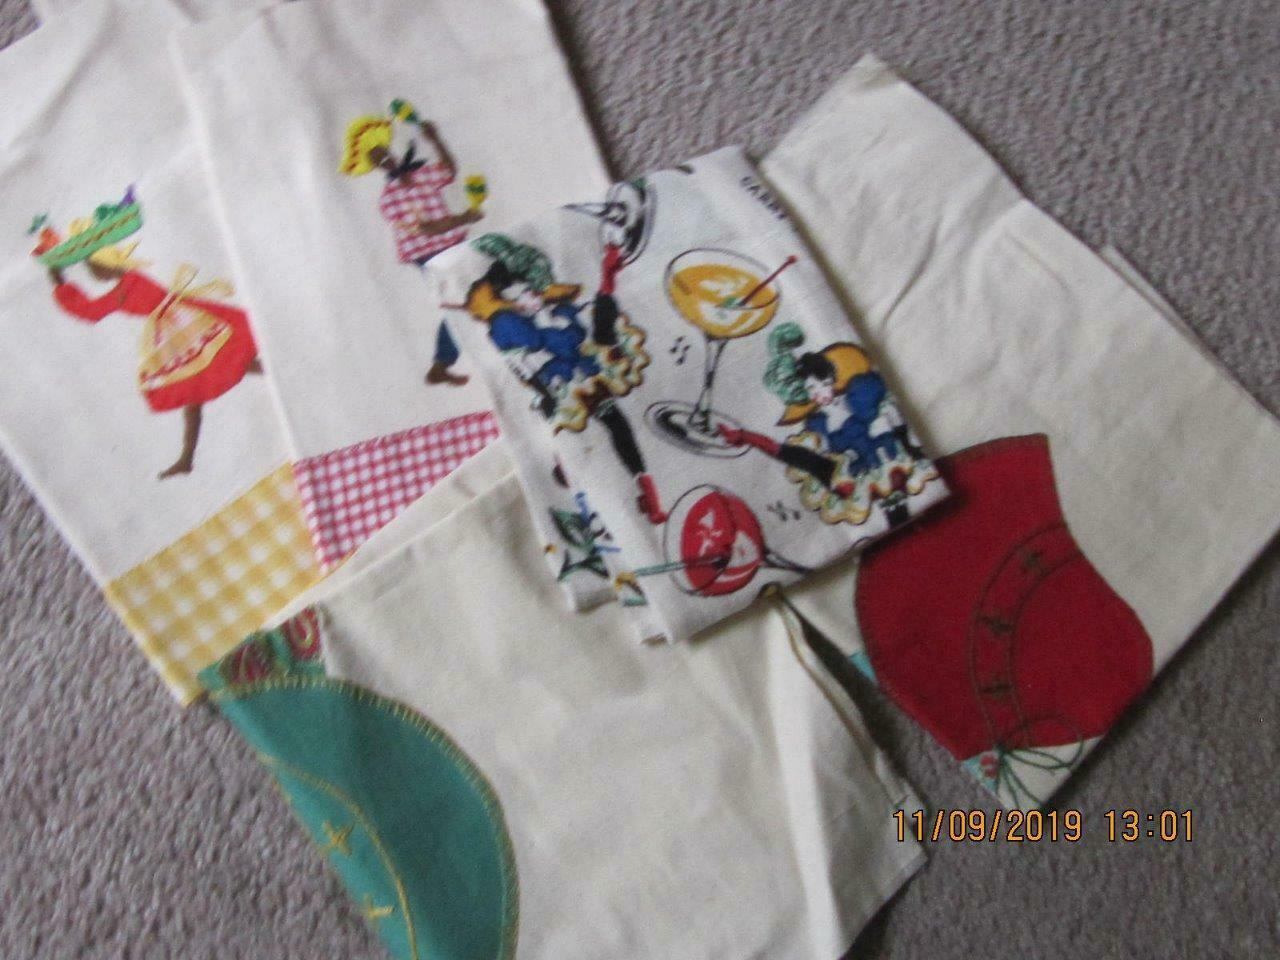 Lot of 25 Vintage teatowels dish towels assorted sizes colors condition fabrics image 6